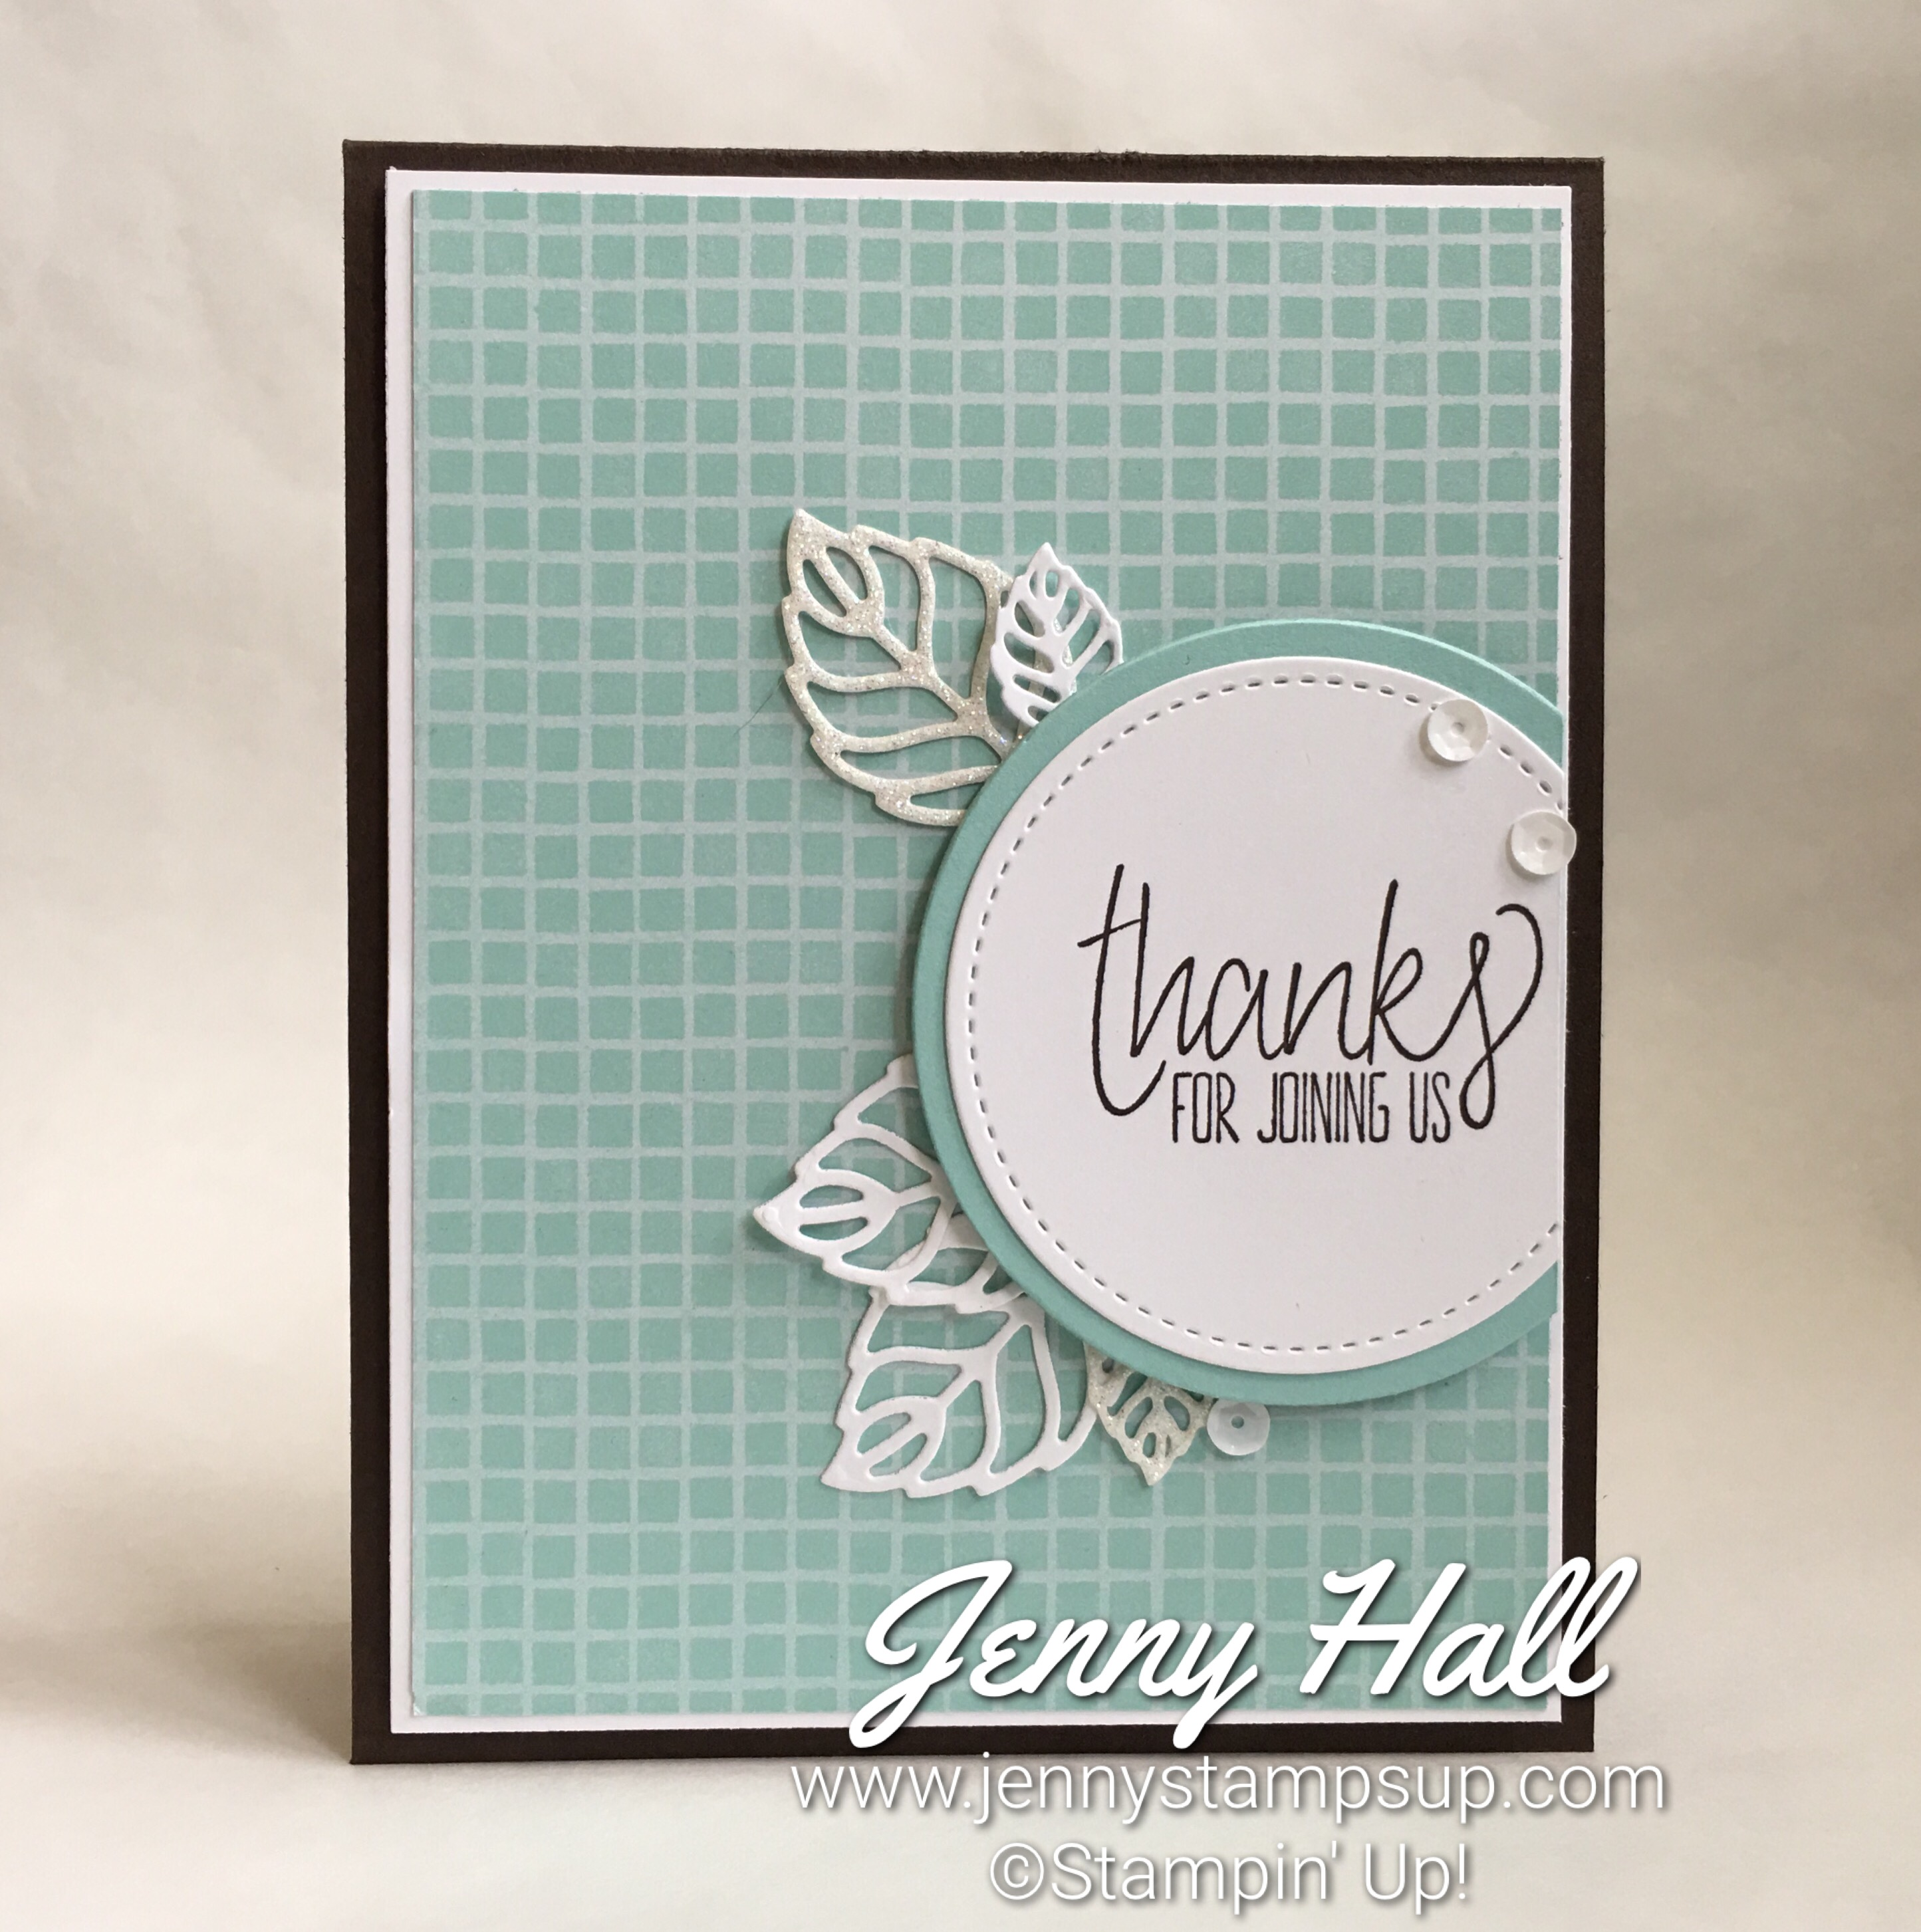 All Things Thanks stamp set with Tasty Treats DSP from the 2017 Occasions Catalog, paired with Stylish Stems Framelits dies, Layering Circles and Stitched Shapes dies